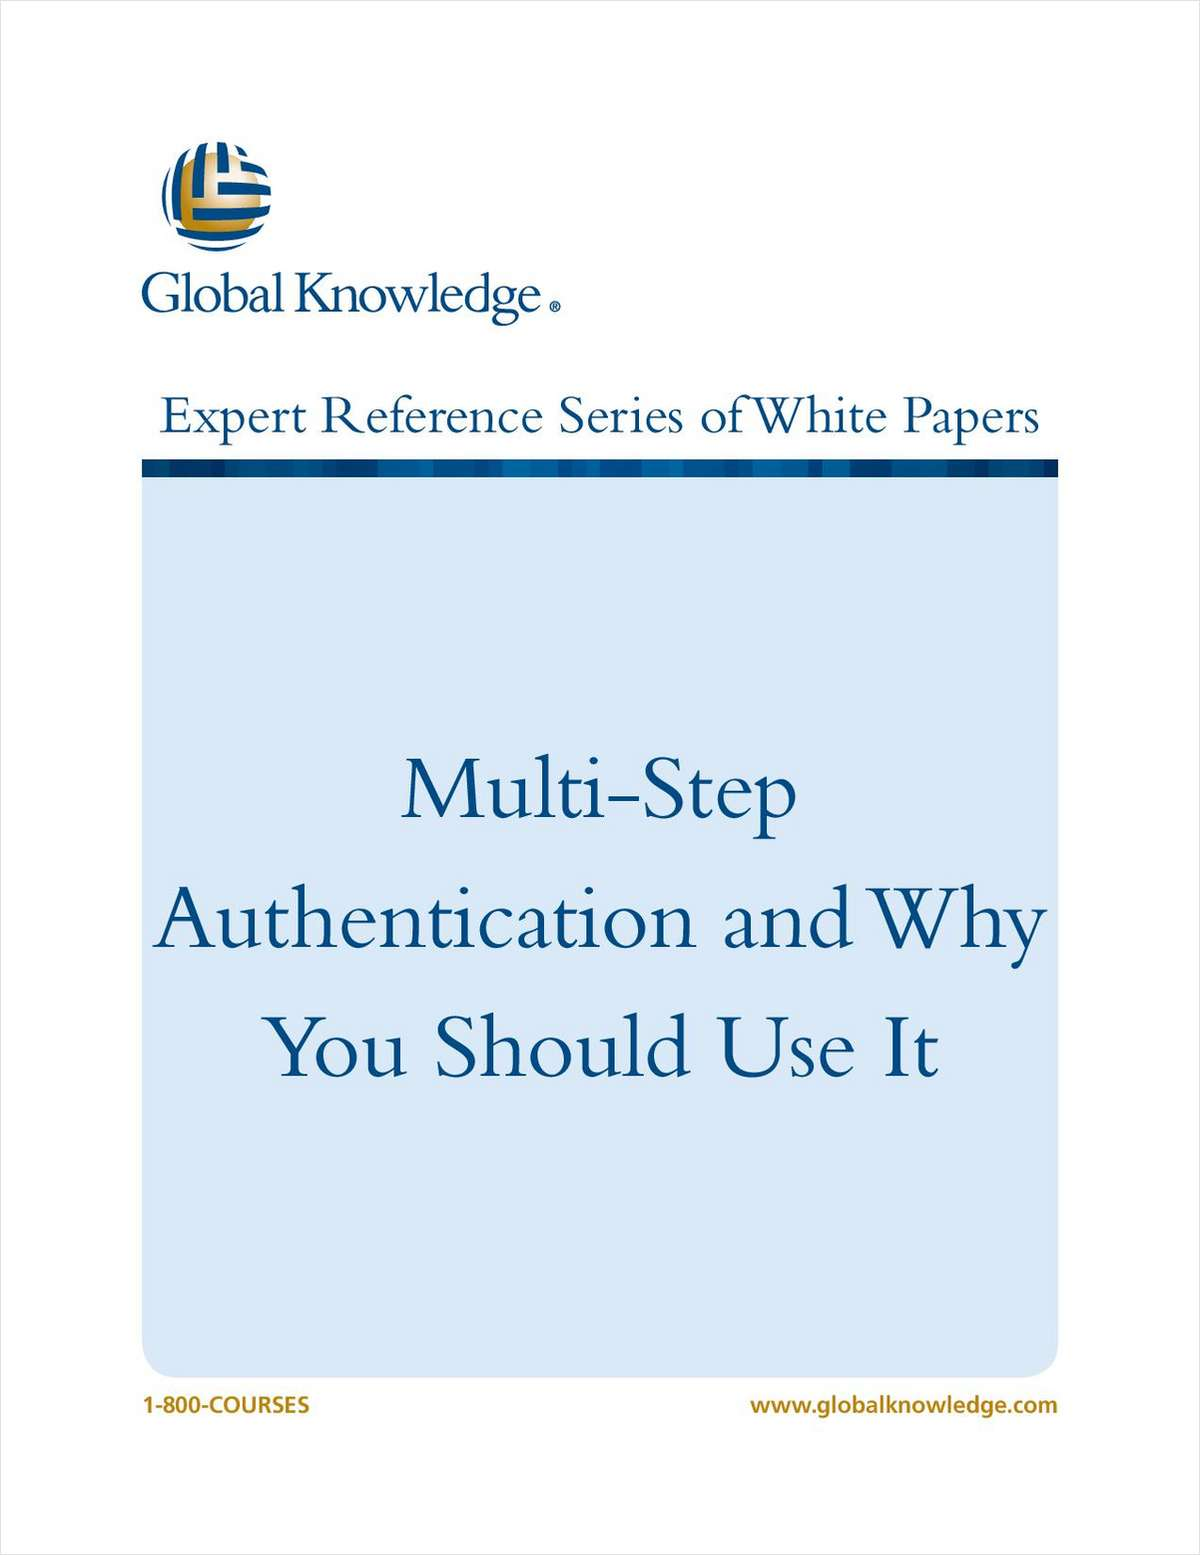 Multi-Step Authentication and Why You Should Use It